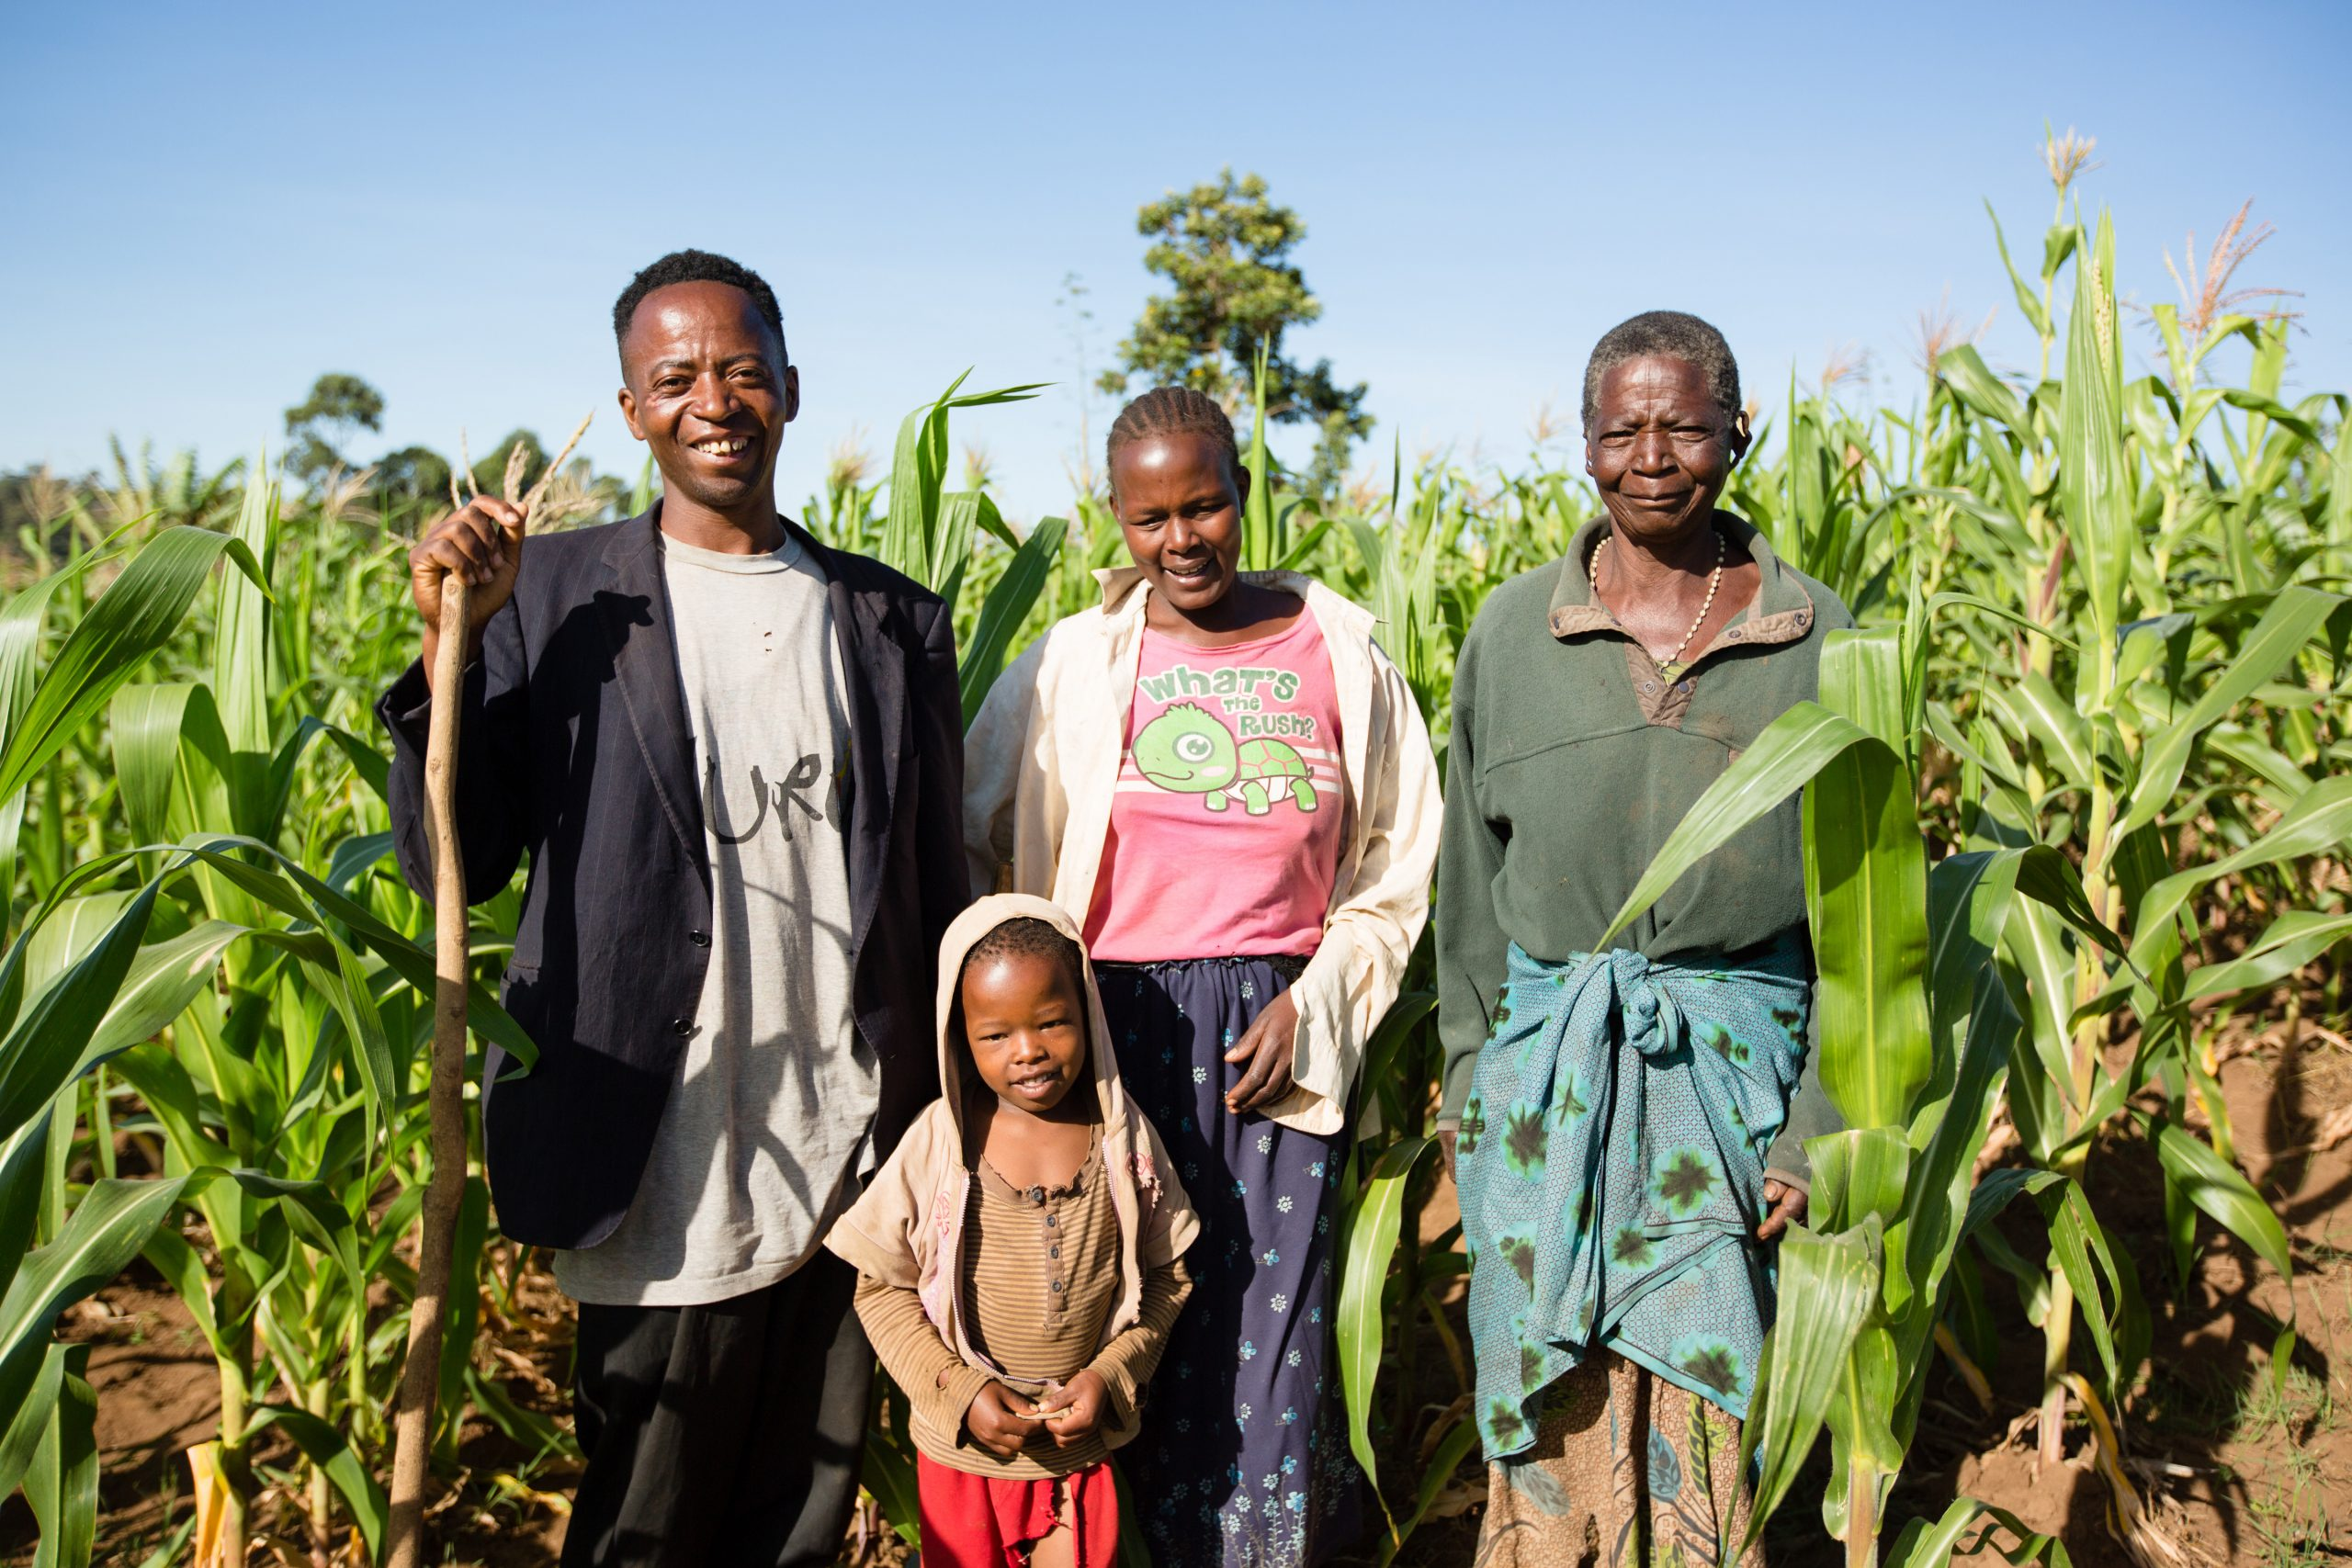 Kenyan family standing in field